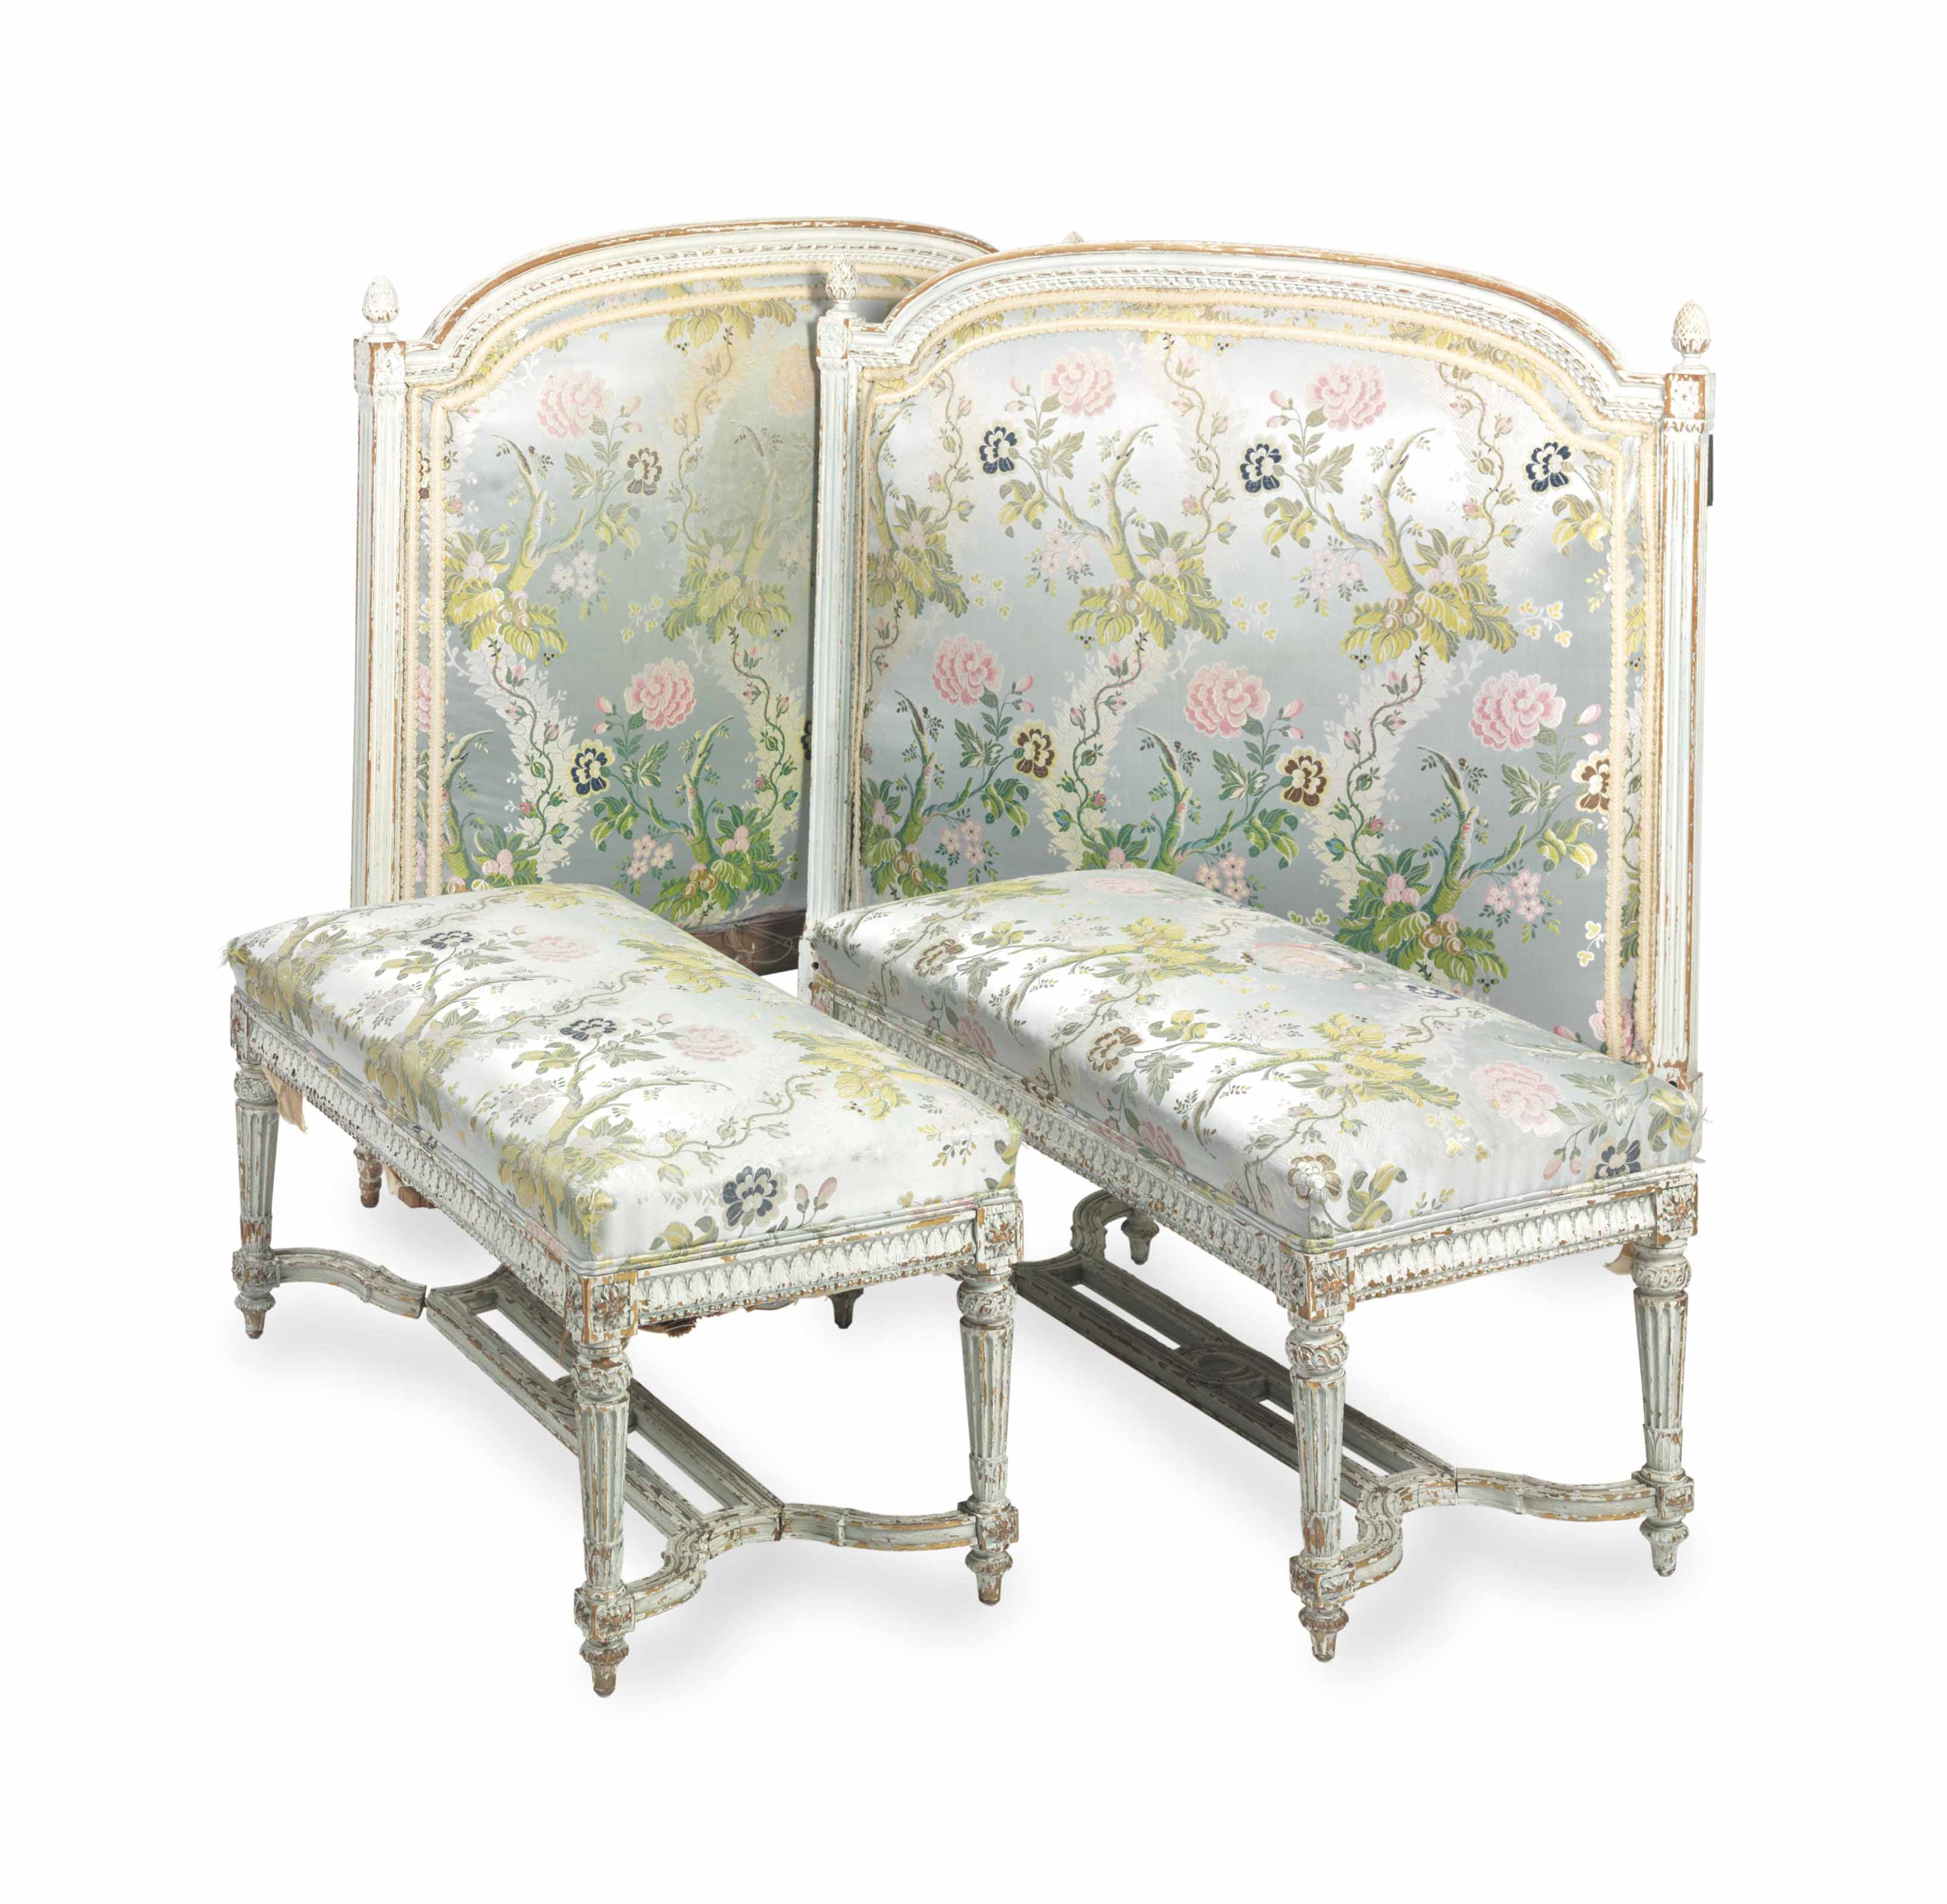 A PAIR OF LOUIS XVI STYLE BLUE-PAINTED BENCHES AND A PAIR OF HEADBOARDS COVERED IN BLUE SILK,